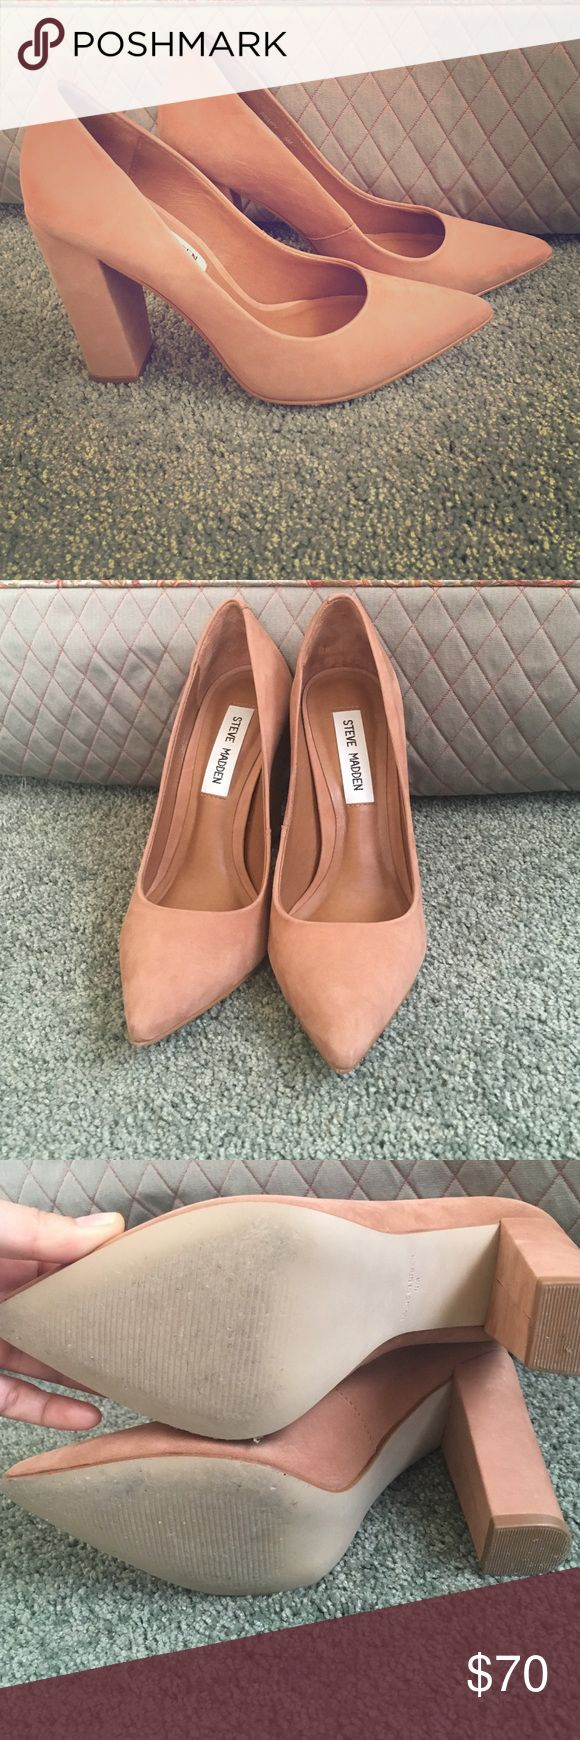 Steve Madden Heels Tan suede, chunky heel, with pointed toe. These heels are SUPER sexy and sophisticated, they are just too small for my long toes. But I love them so much that I'm going to order a larger size in the future!! Perfect condition, worn twice, no scuffs or marks. Steve Madden Shoes Heels